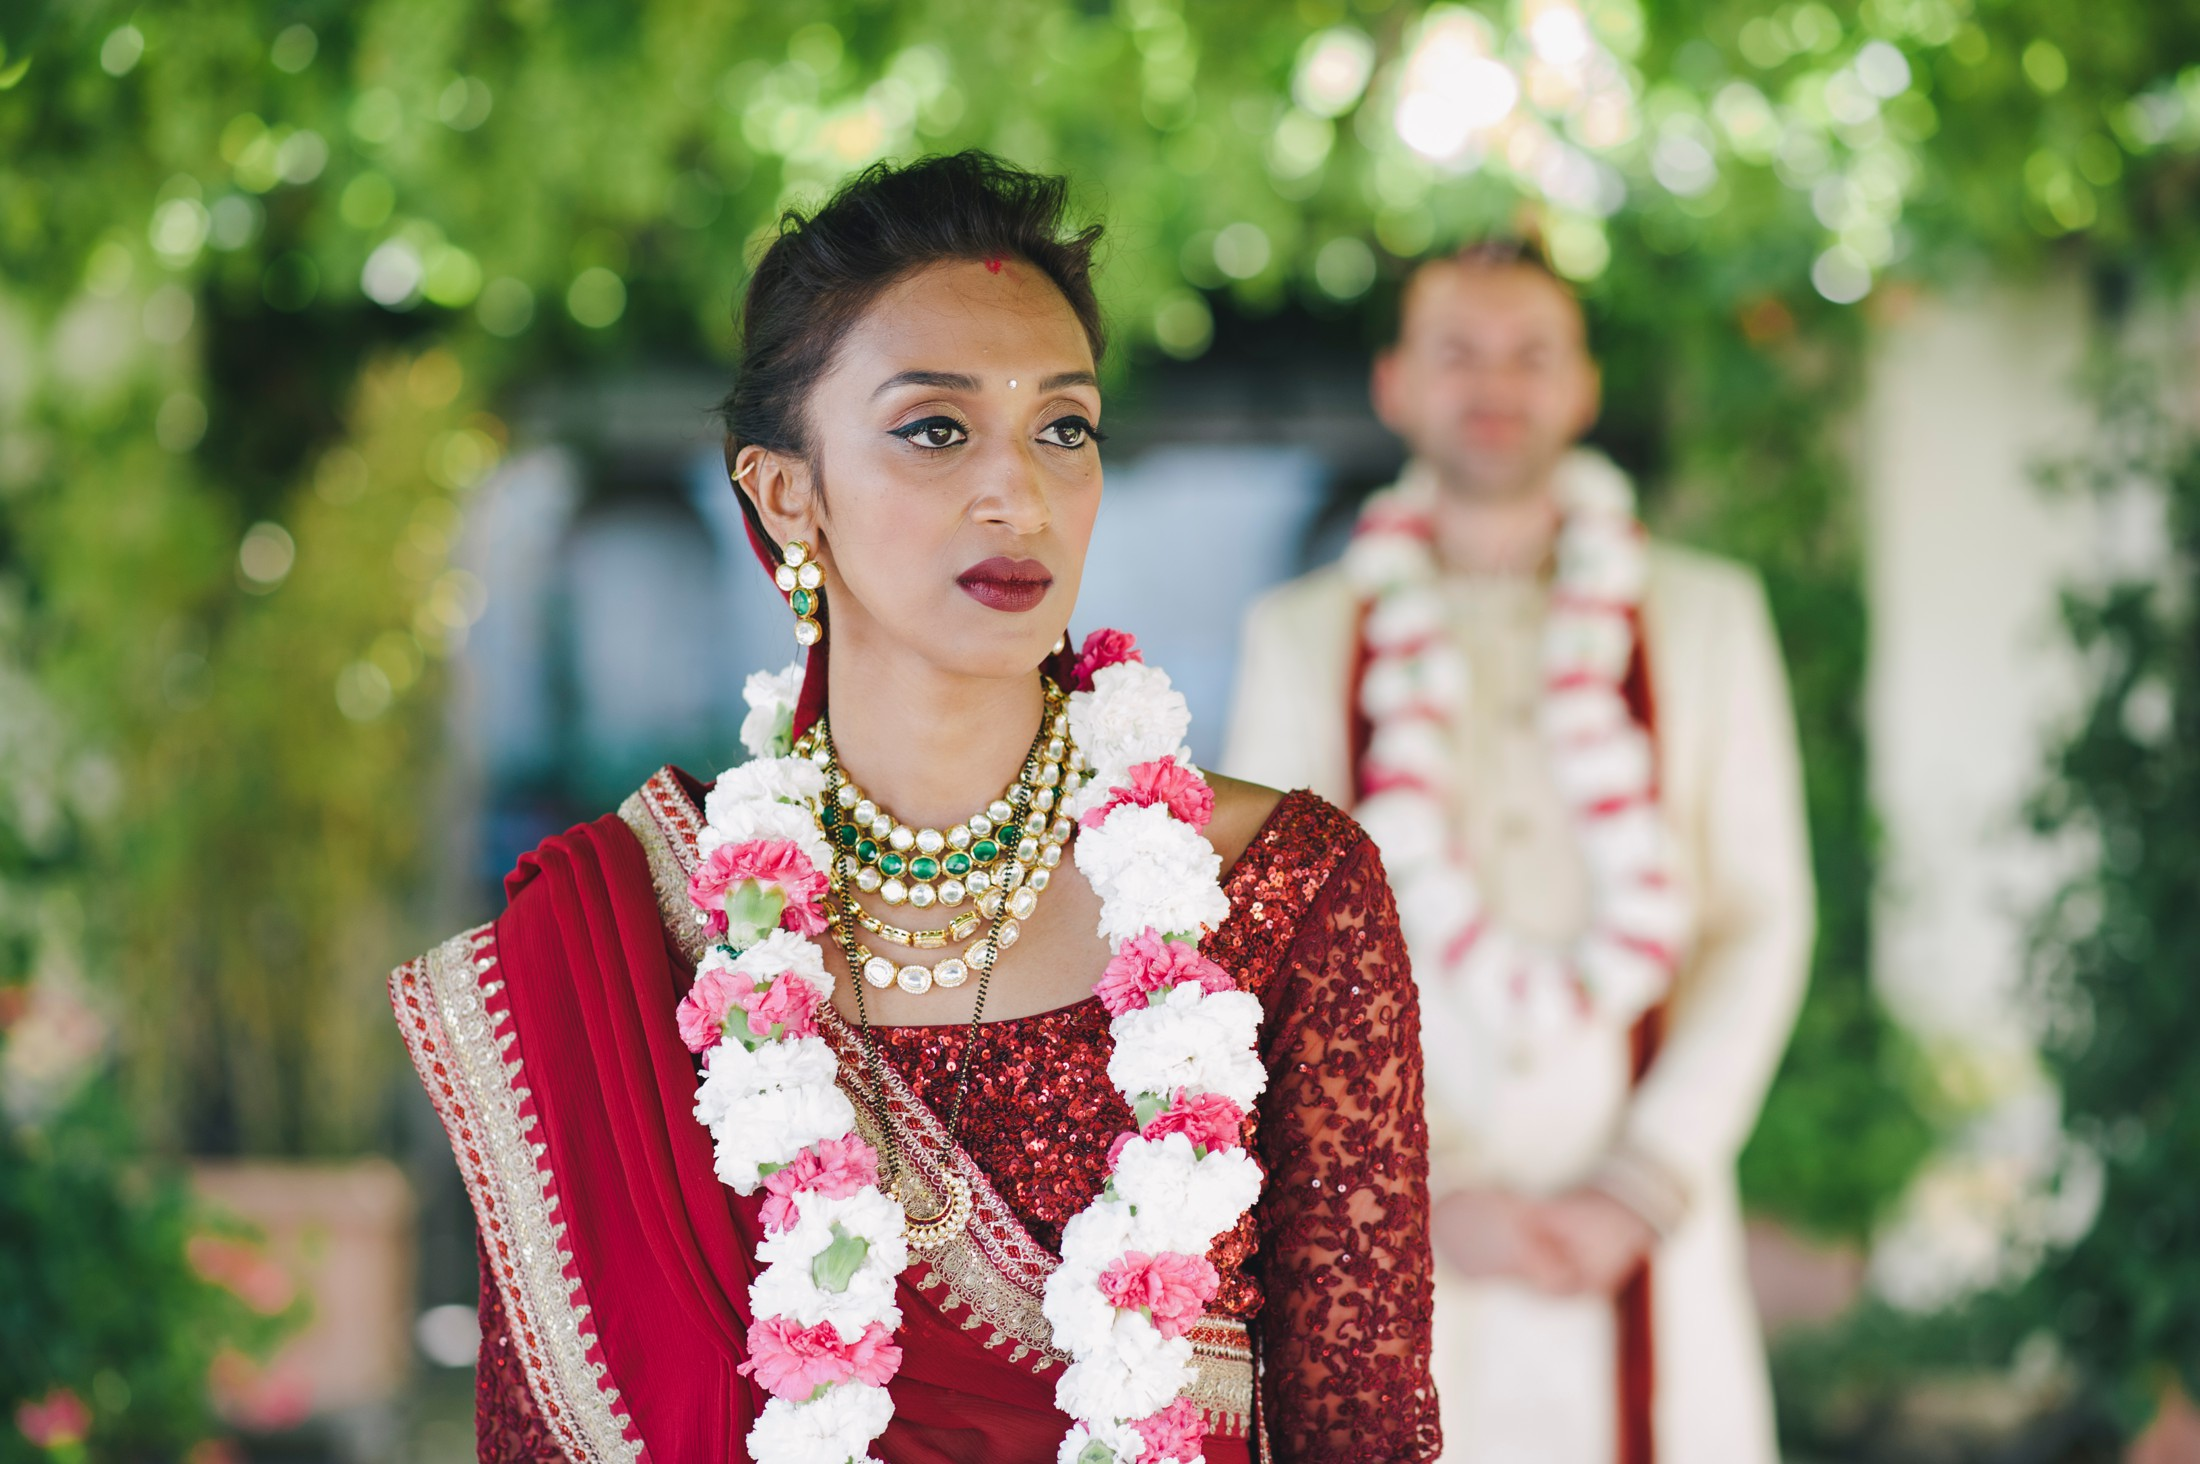 bride's portrait with the groom on the background